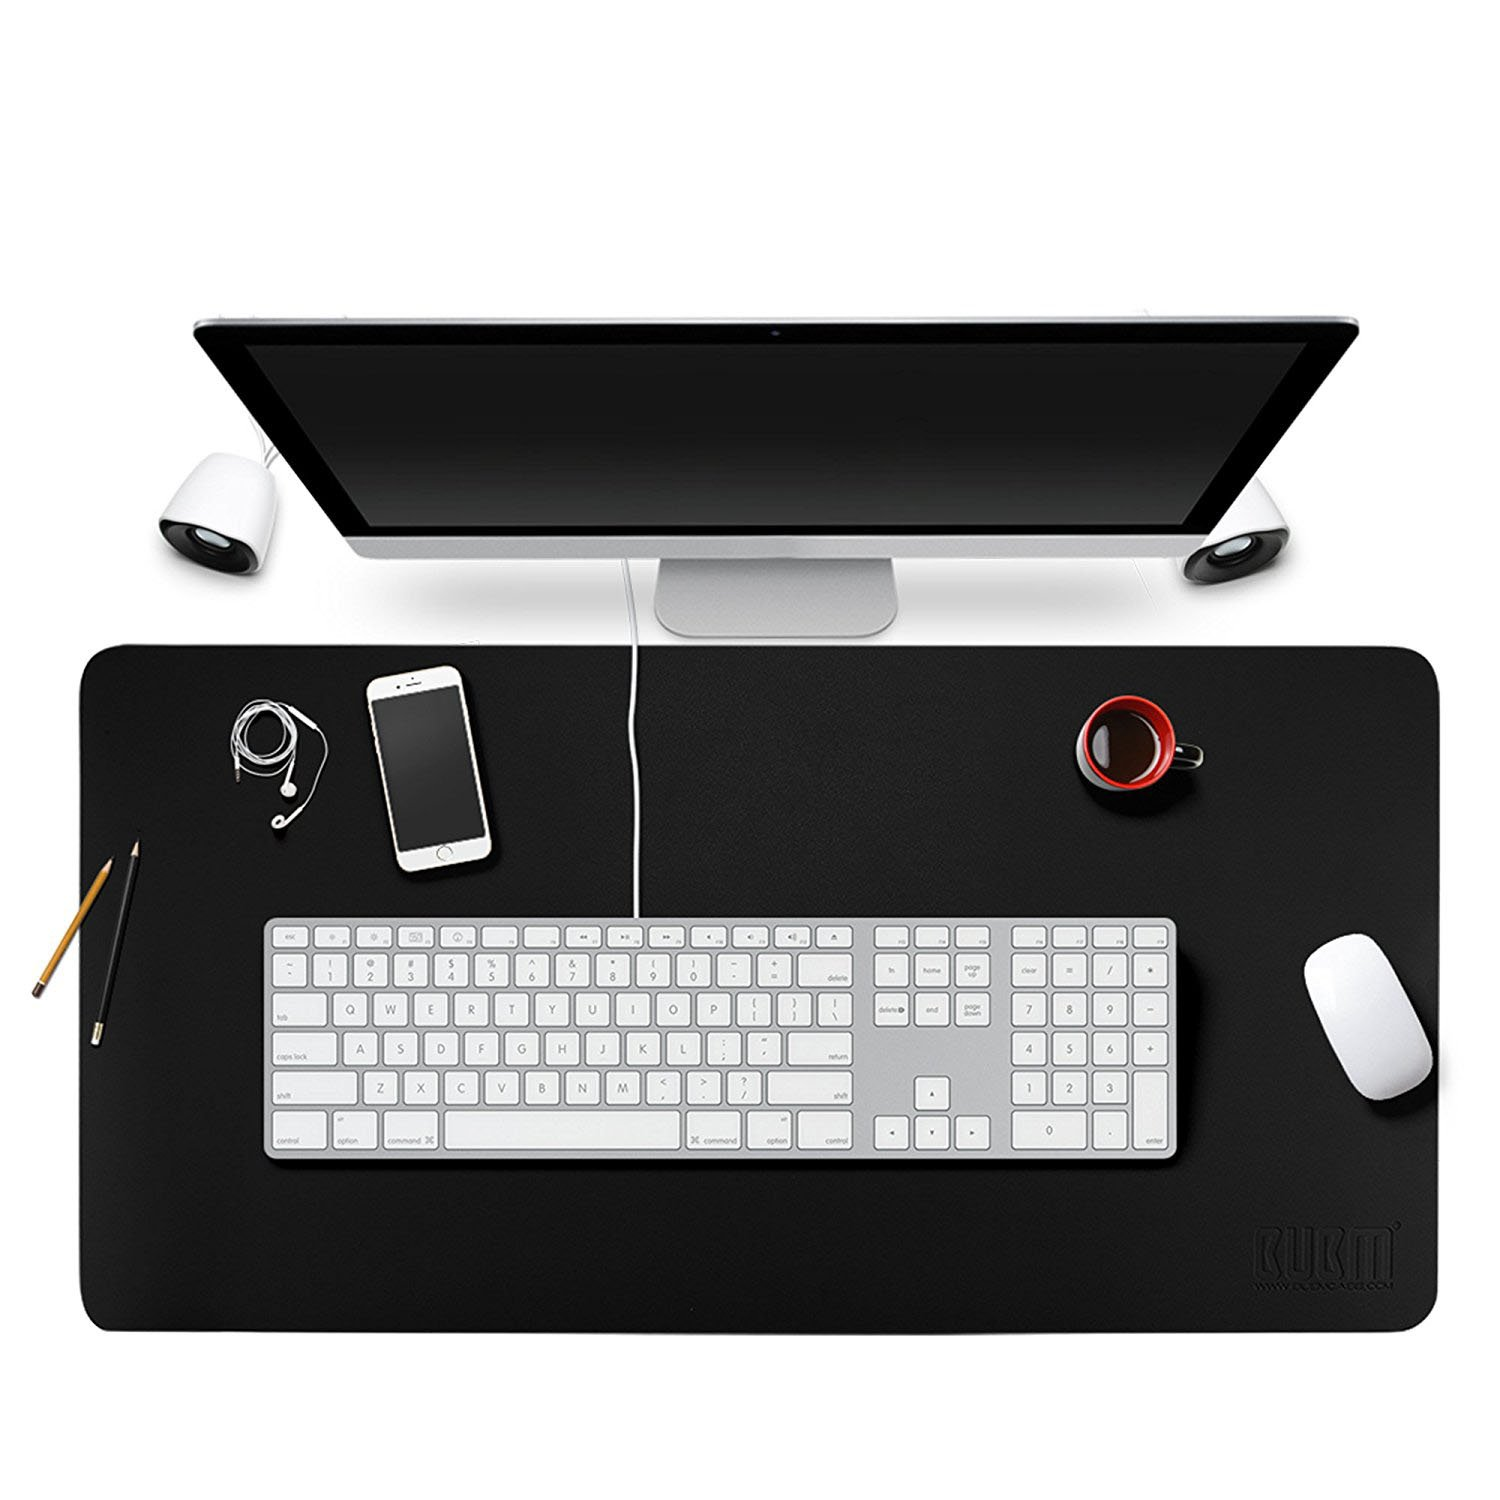 BUBM Desk Pad Protecter 35'' x 18'', PU Leather Desk Mat Blotters Mouse Pad Organizer with Comfortable Writing Surface(Black)